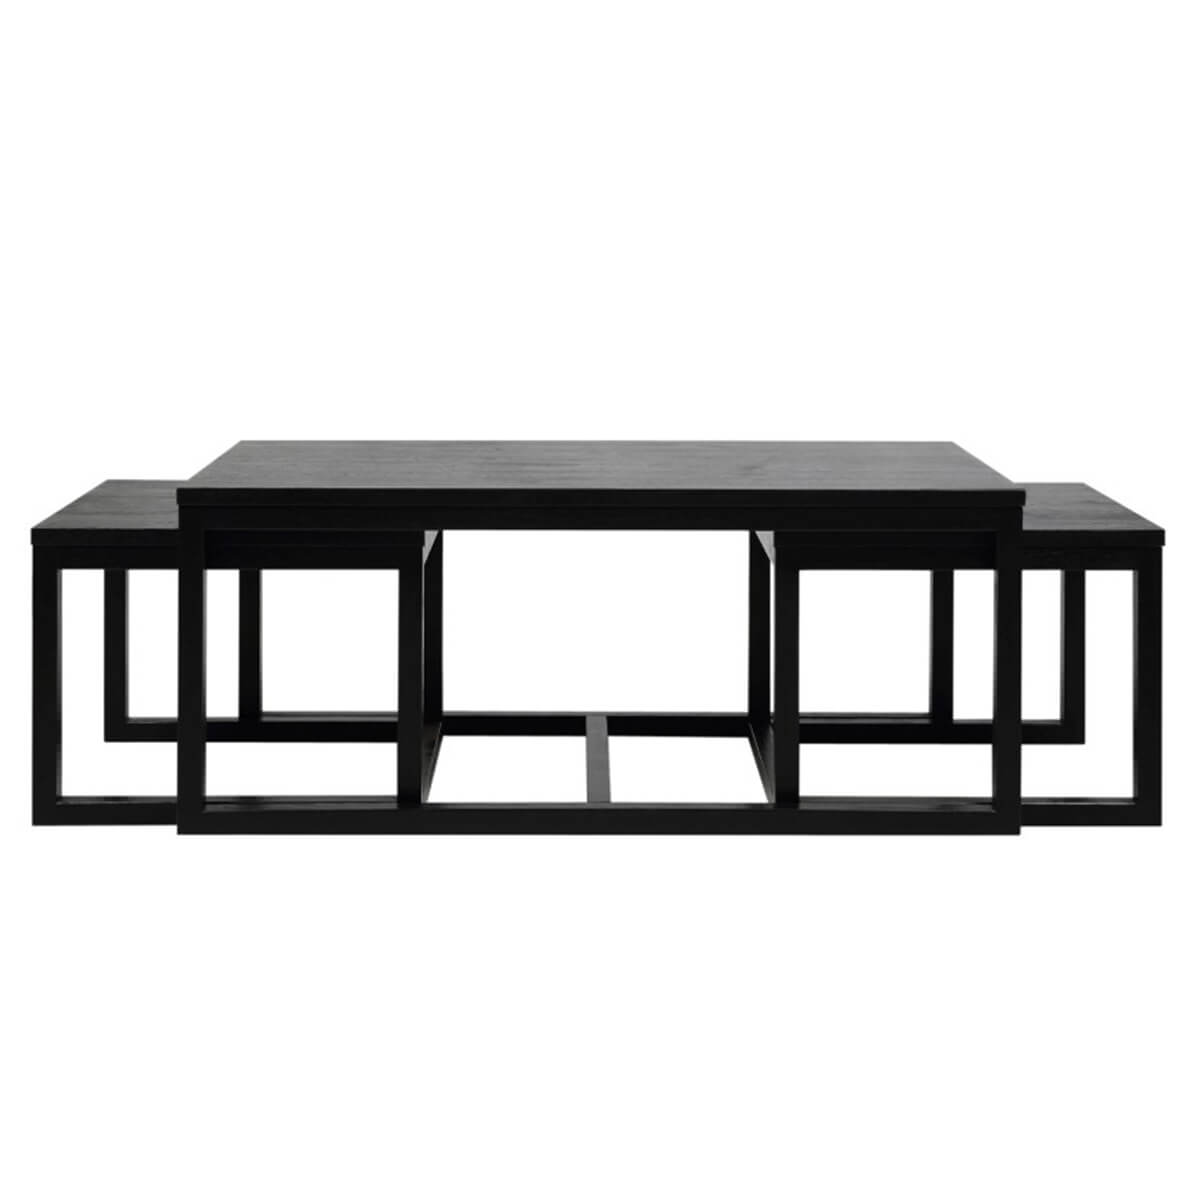 Curb Set of 3 Coffee Tables Black Ash Veneer